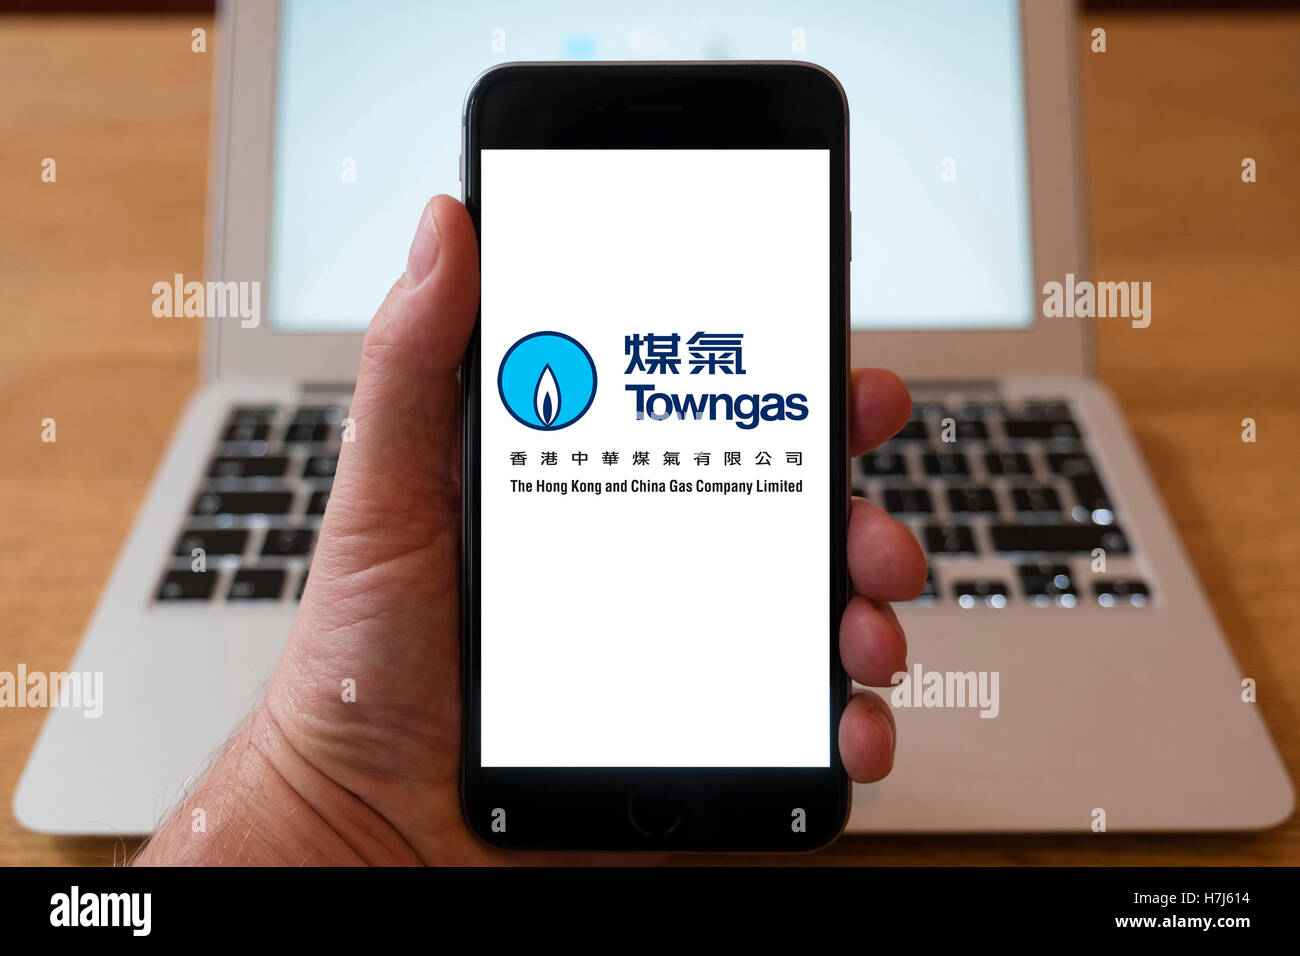 Using iPhone smart phone to display logo of Towngas, Hong Kong utility company - Stock Image